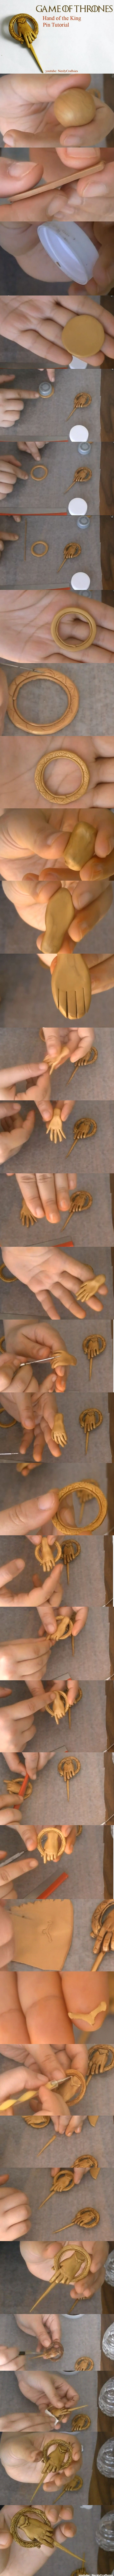 Game of Thrones Hand of the King Tutorial  Video version also available on youtube ---> http://www.youtube.com/user/NerdyCraftsies/videos